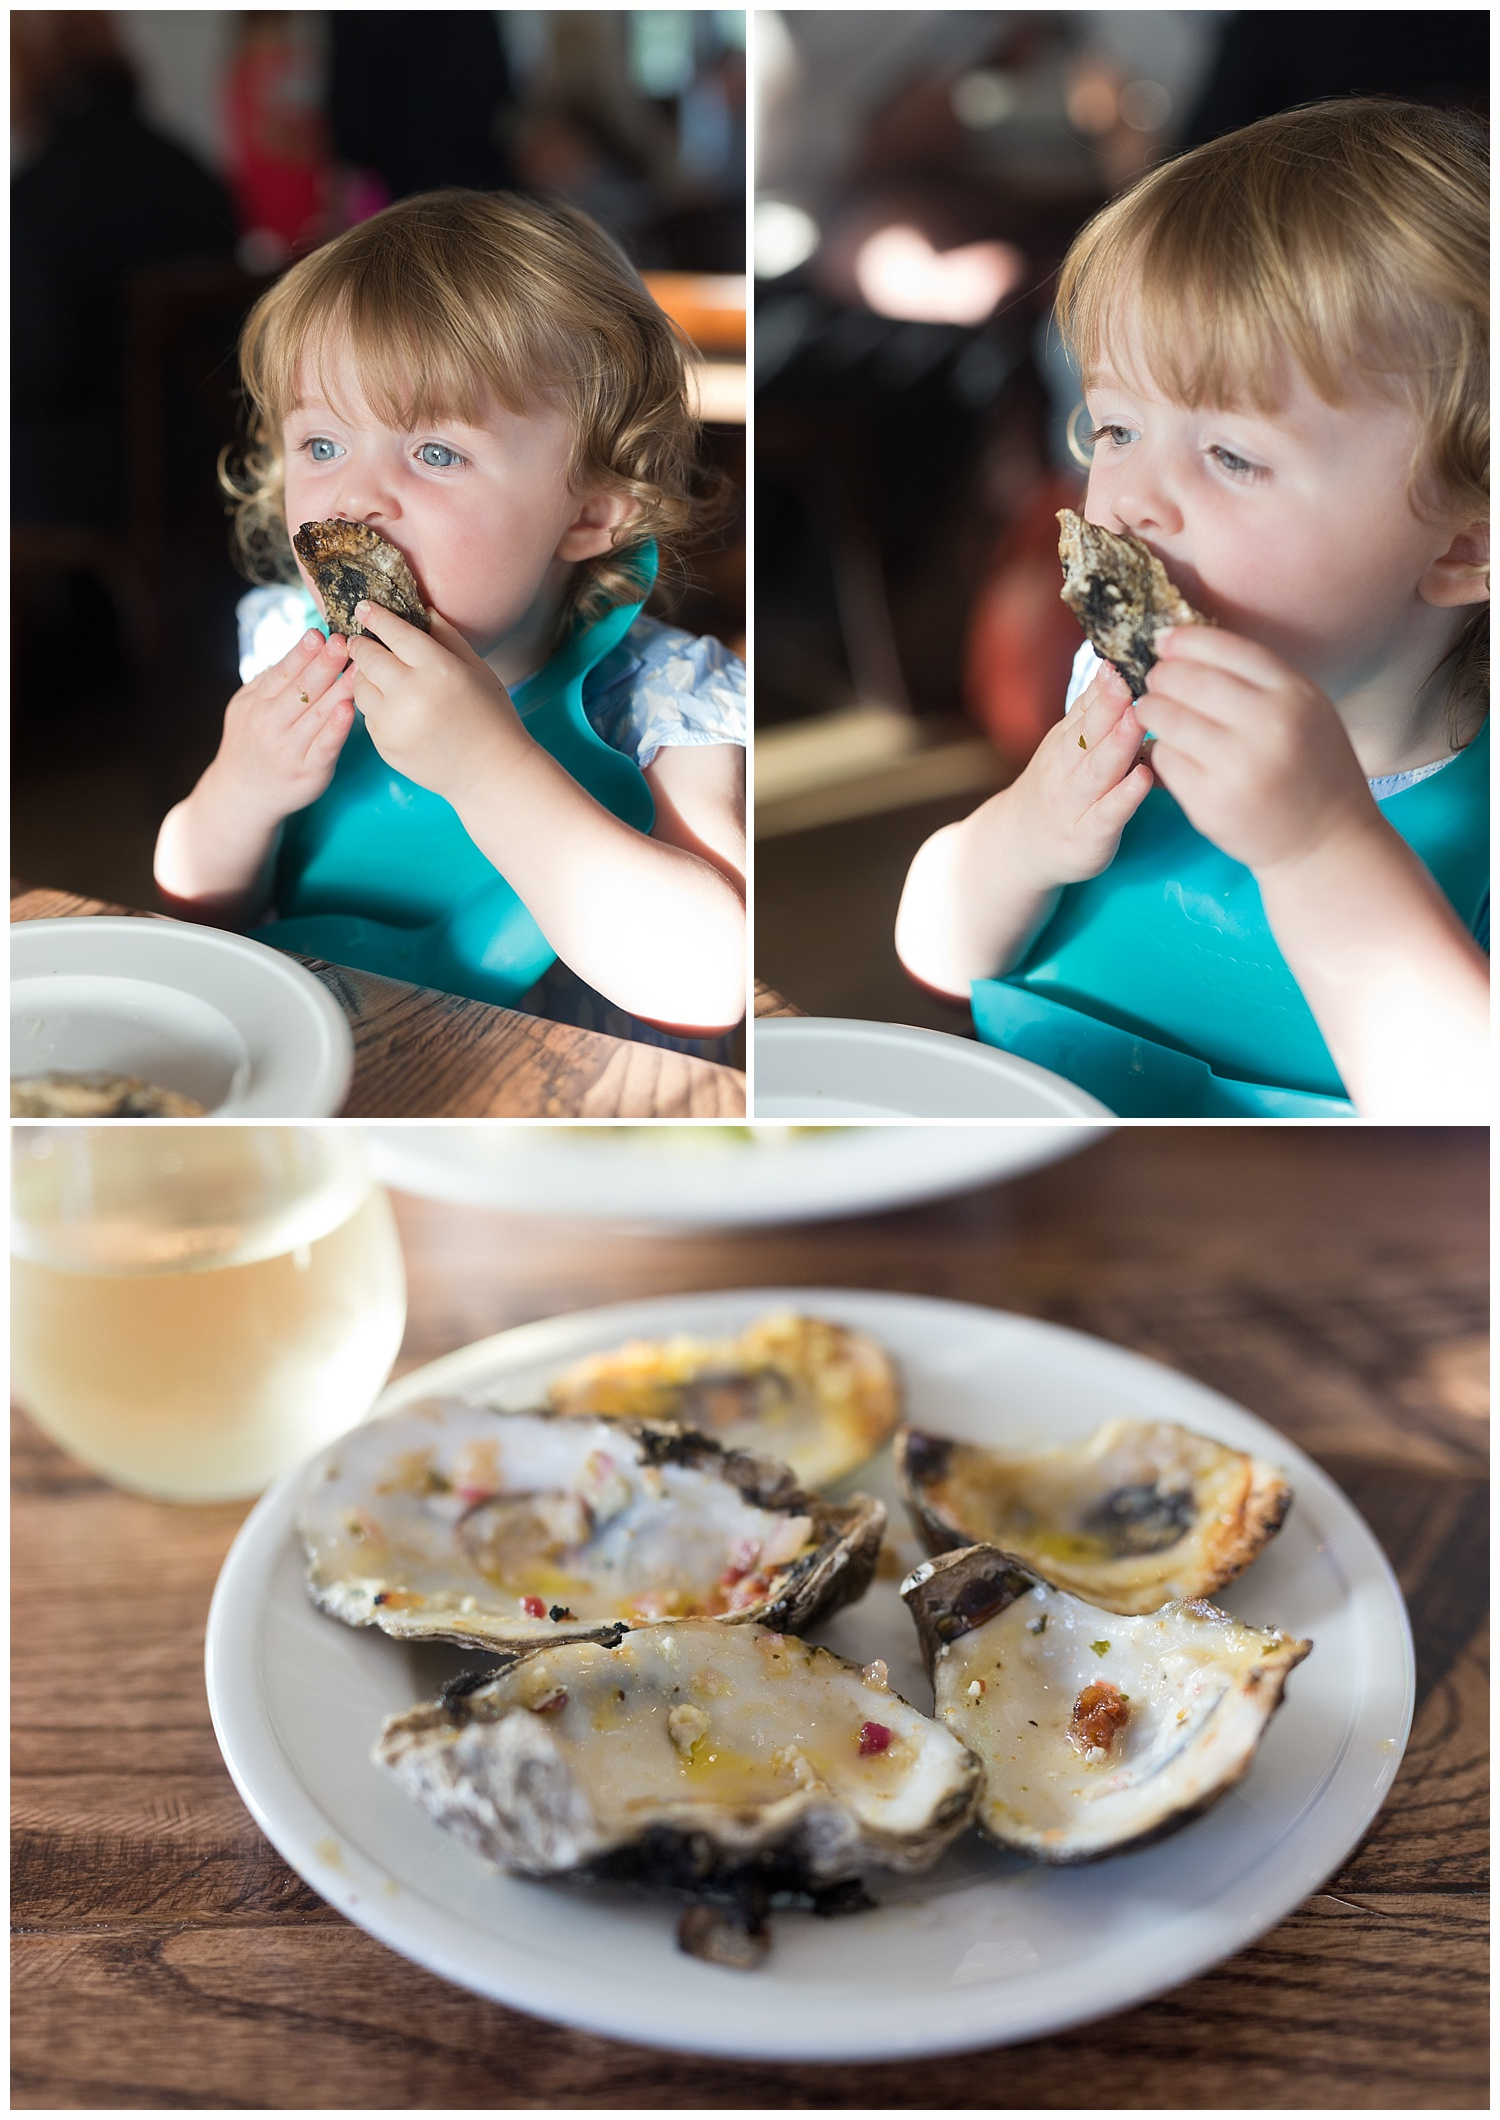 Brady's Steak and Seafood in Pascagoula, Mississippi (toddler girl eating oysters)